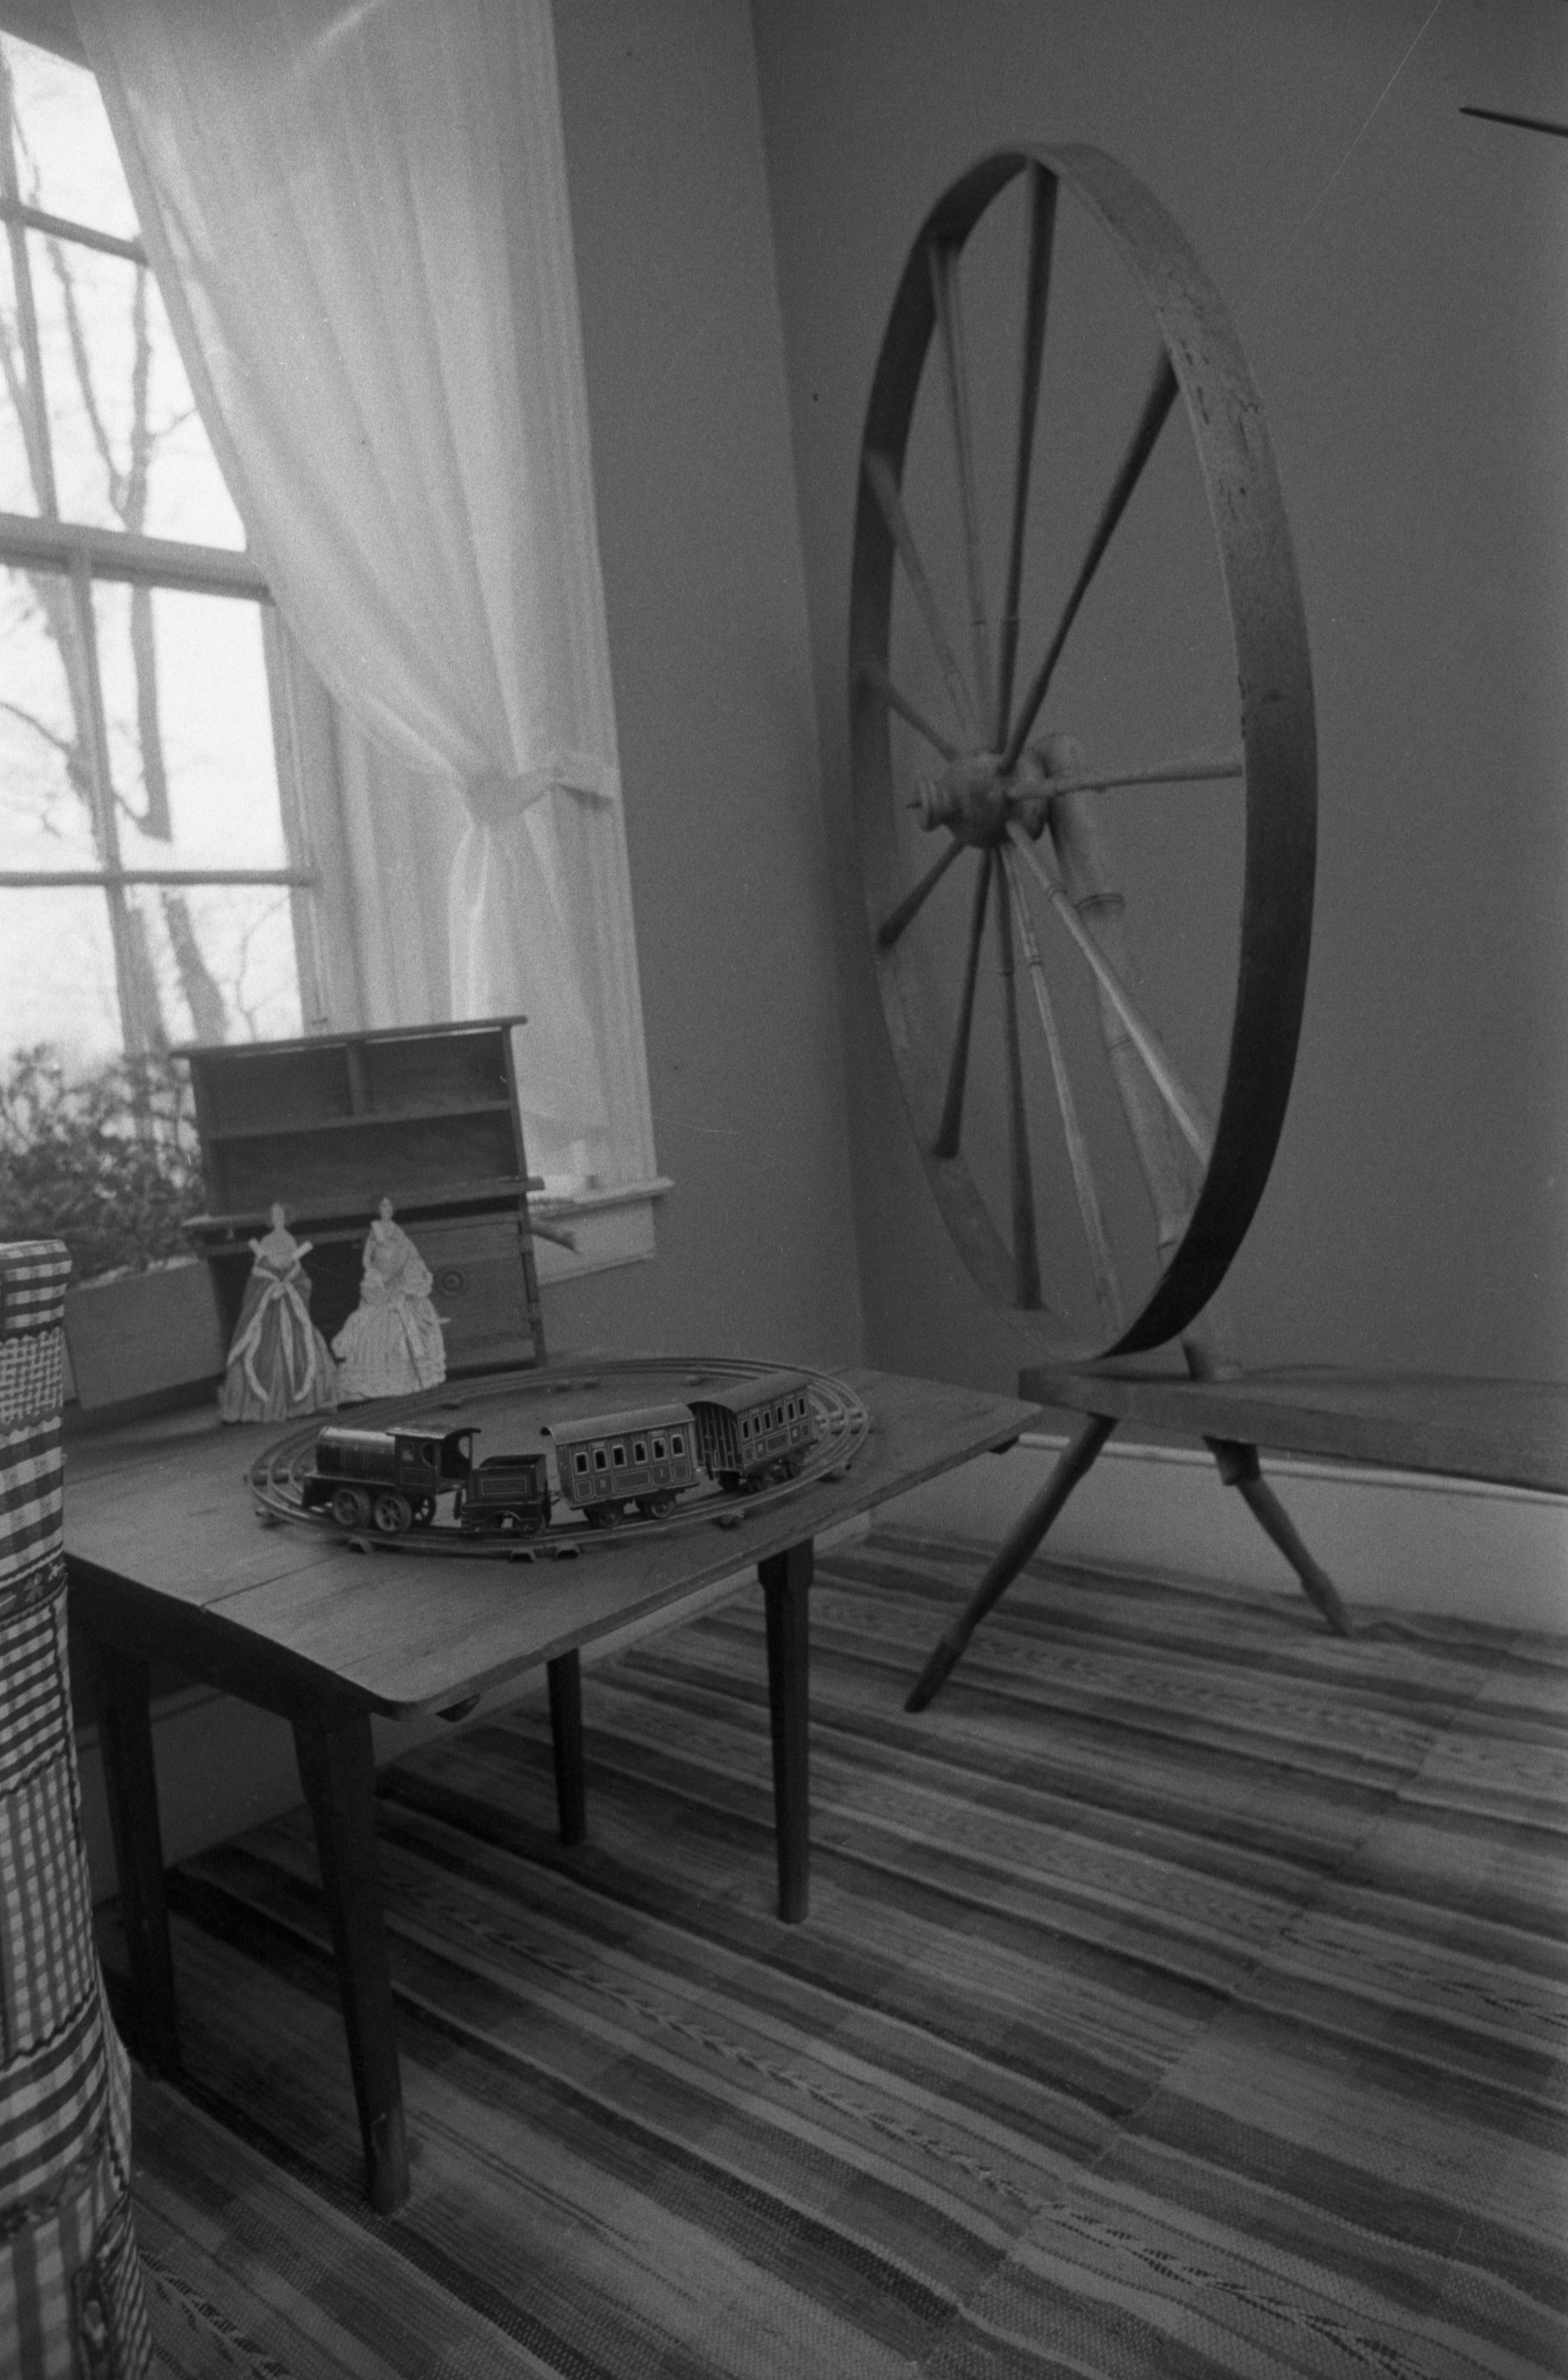 Spinning Wheel Next To Toy Train At Cobblestone Farmhouse, December 22, 1980 image